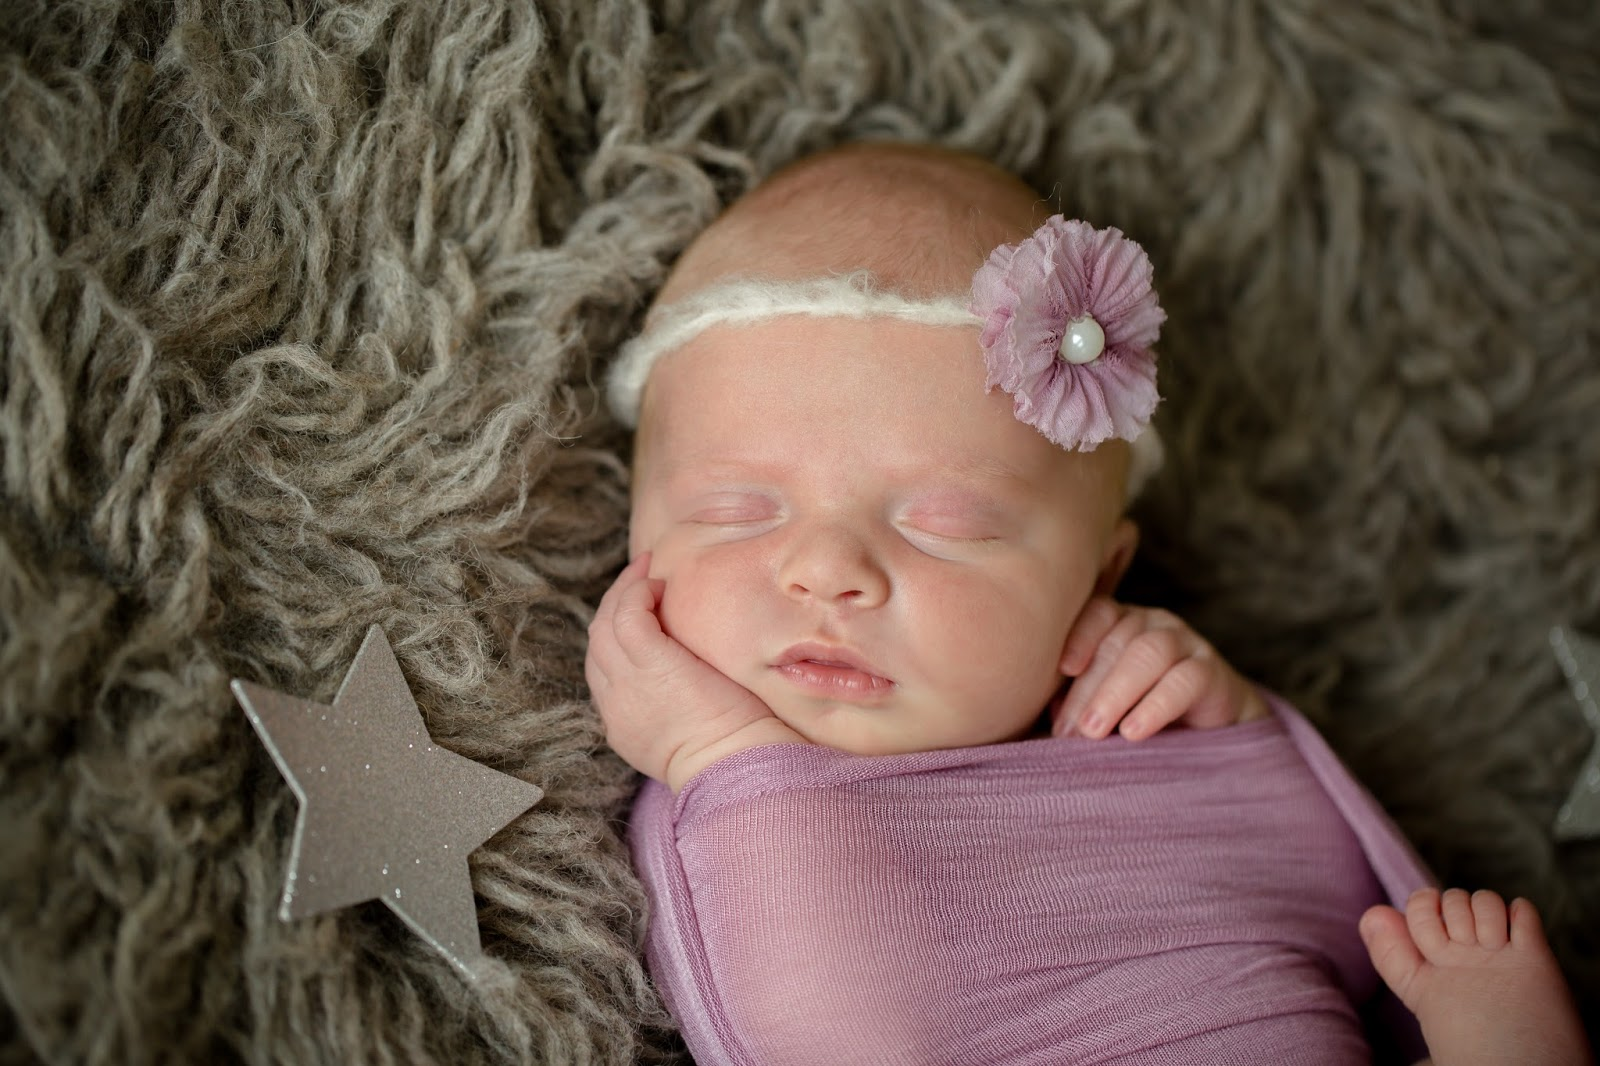 The moon and stars swaddled baby